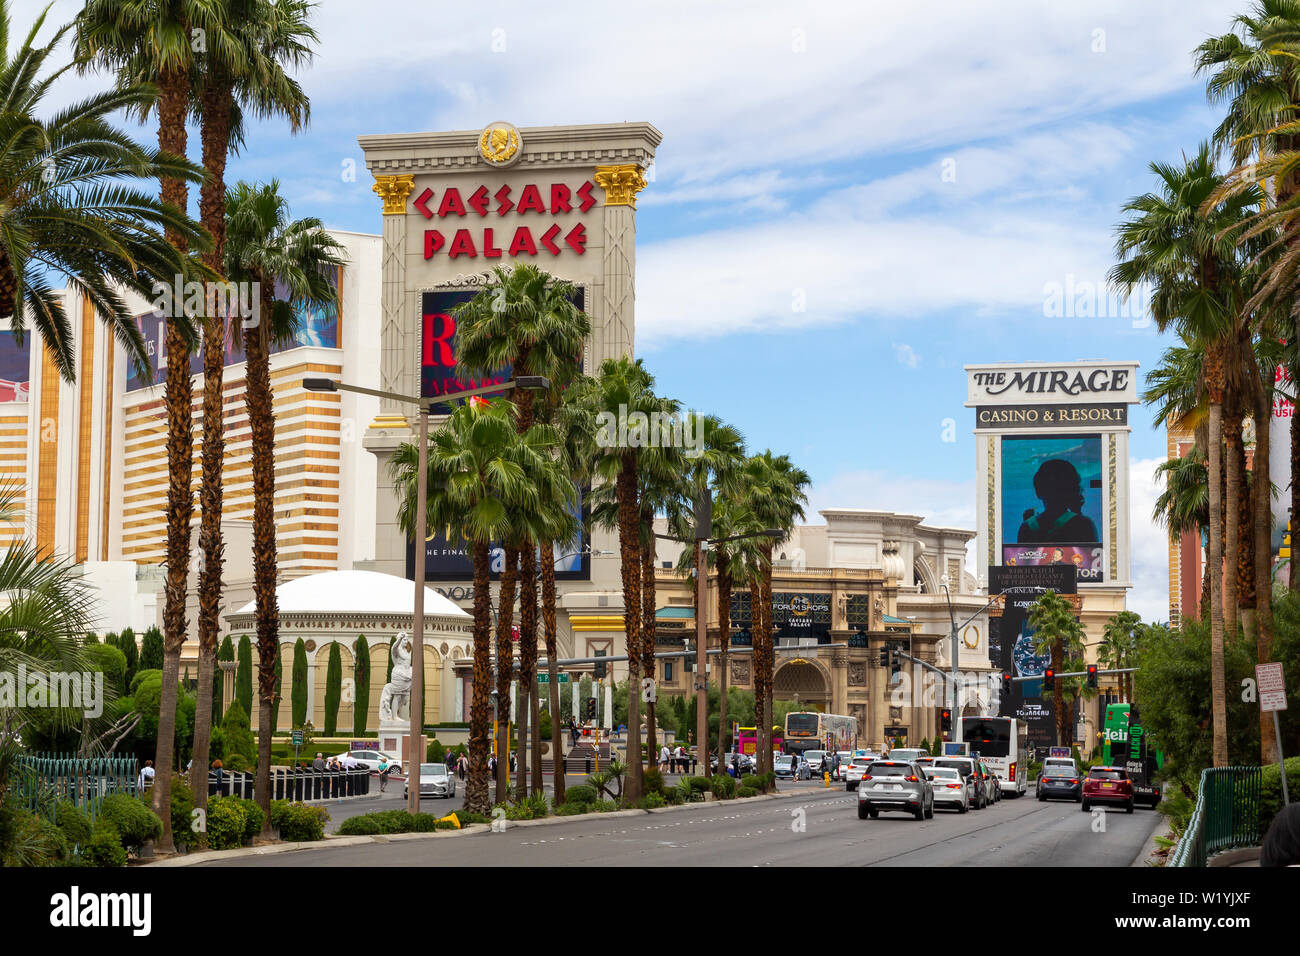 Las Vegas Strip, casino and hotels city view at daytime from the street. Caesars Palace hotel and casi Stock Photo